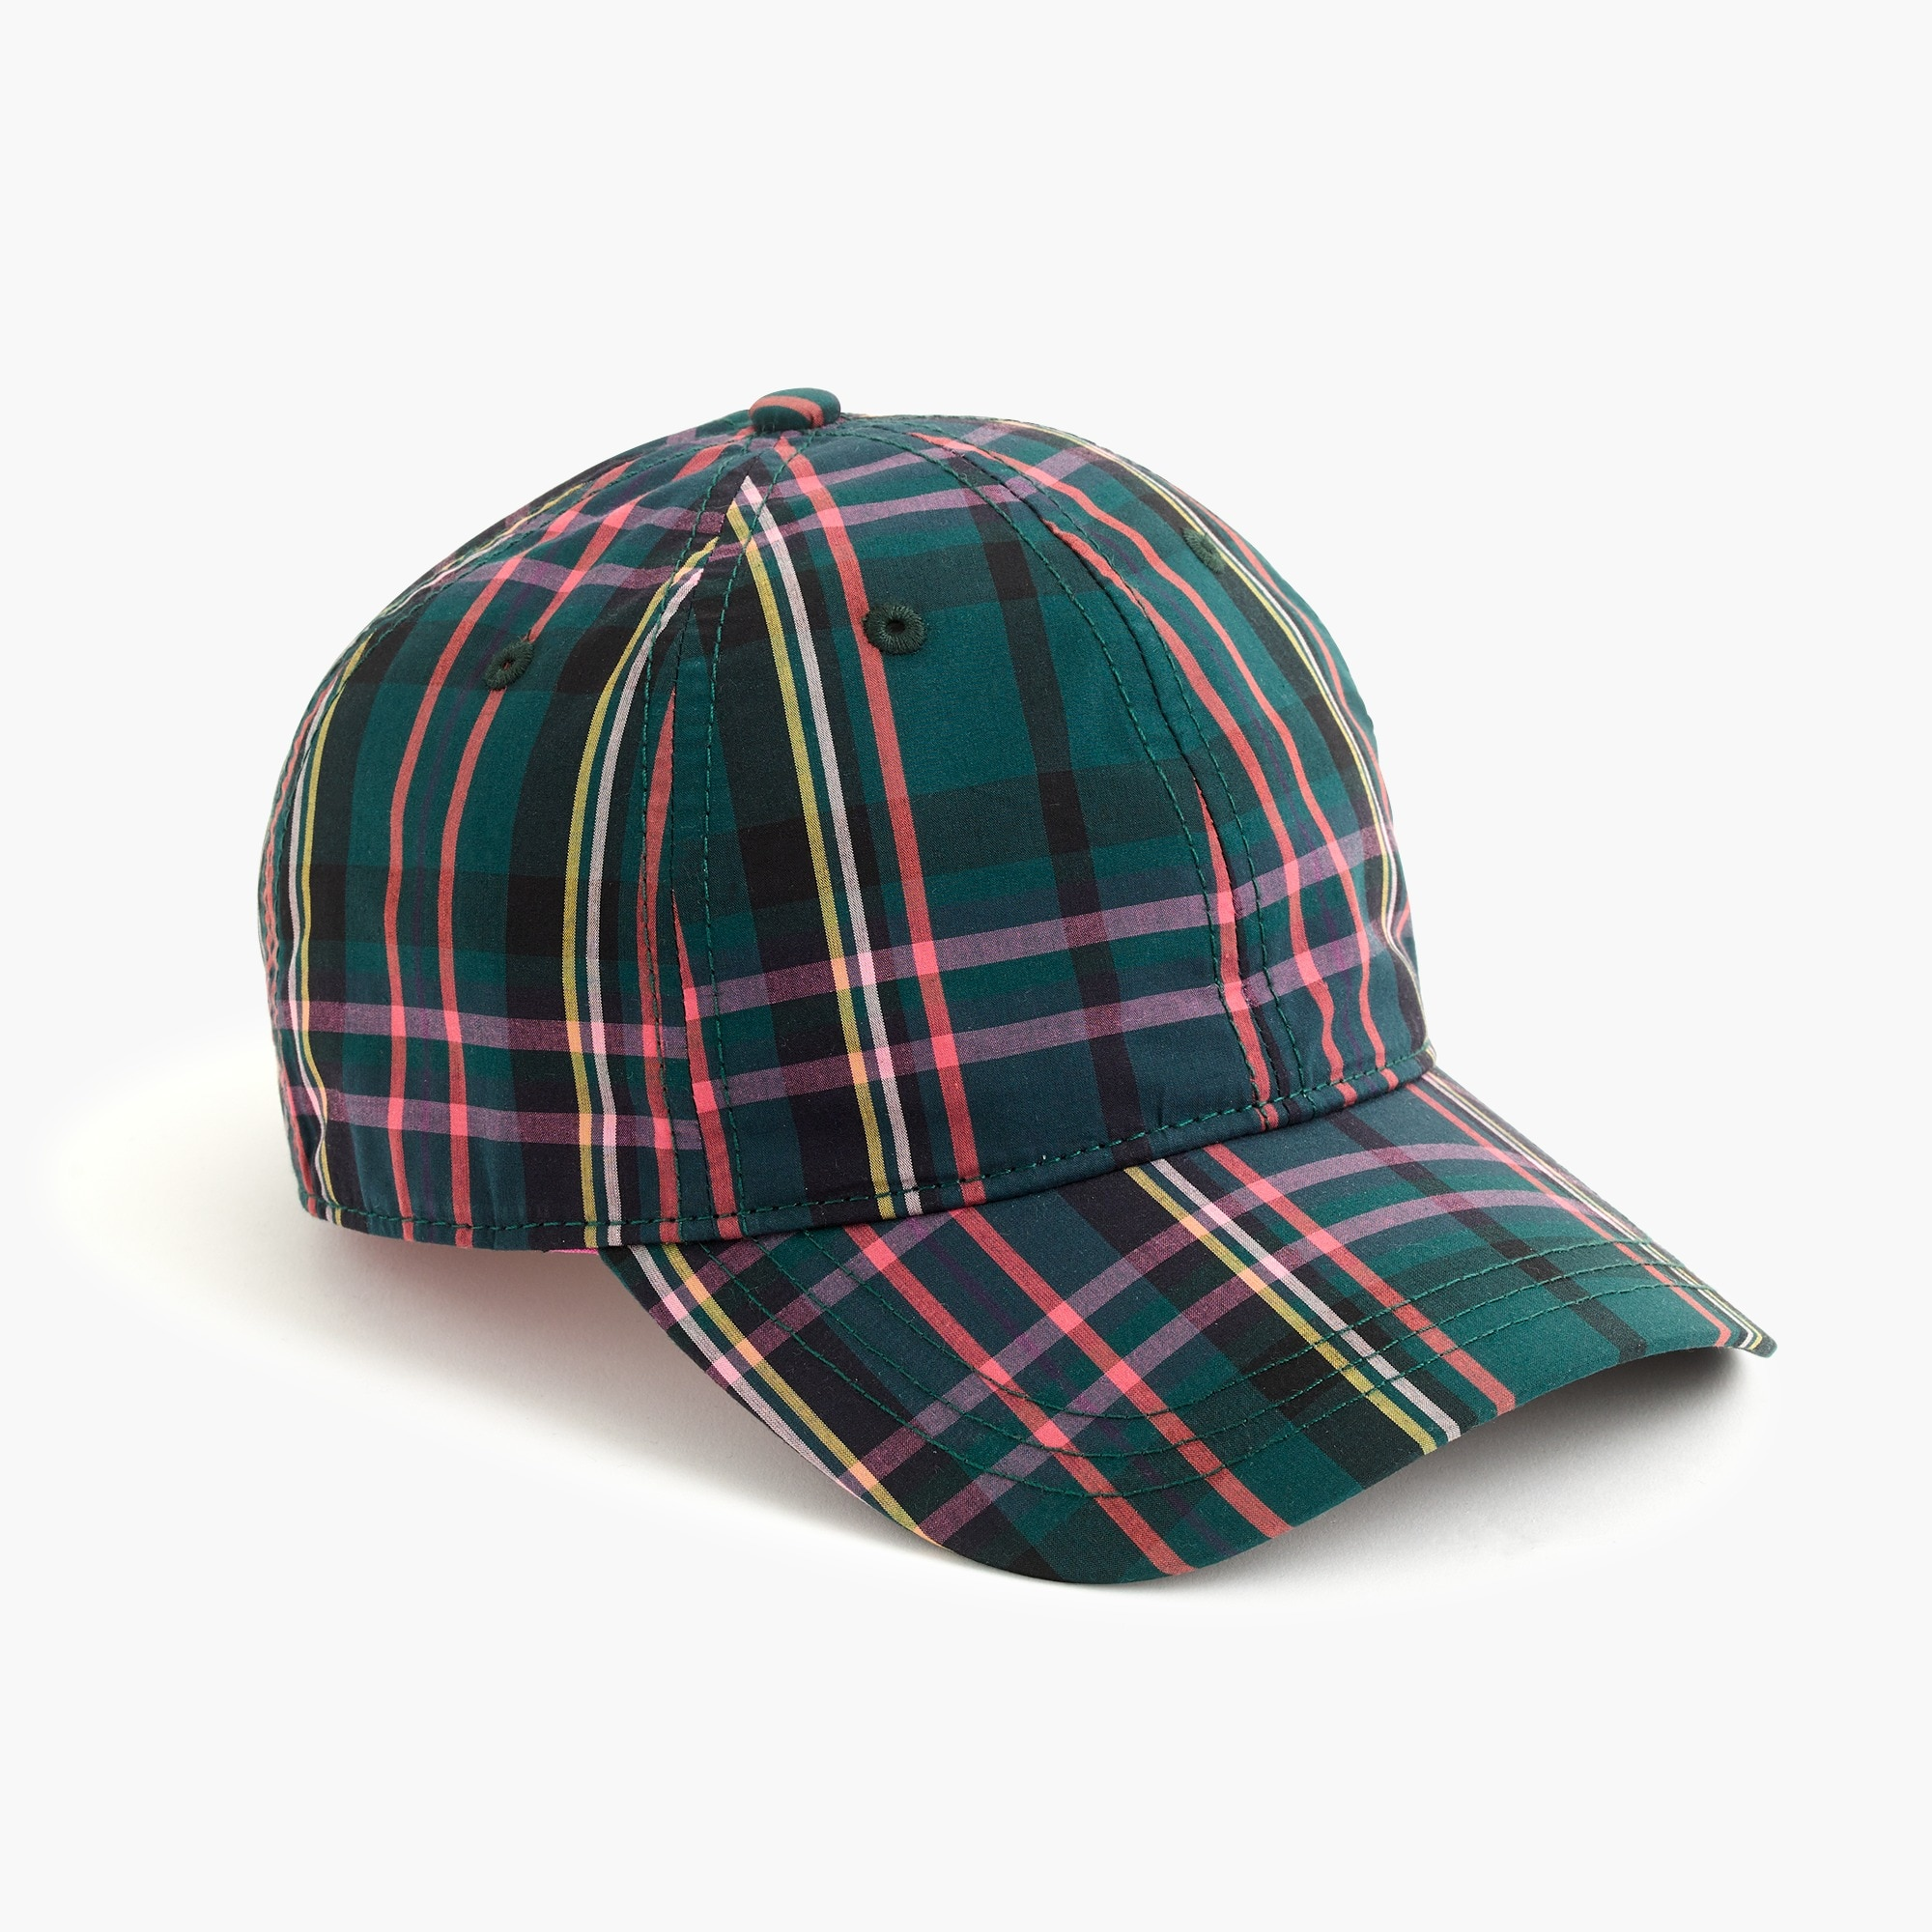 womens Baseball cap in J.Crew Signature Tartan